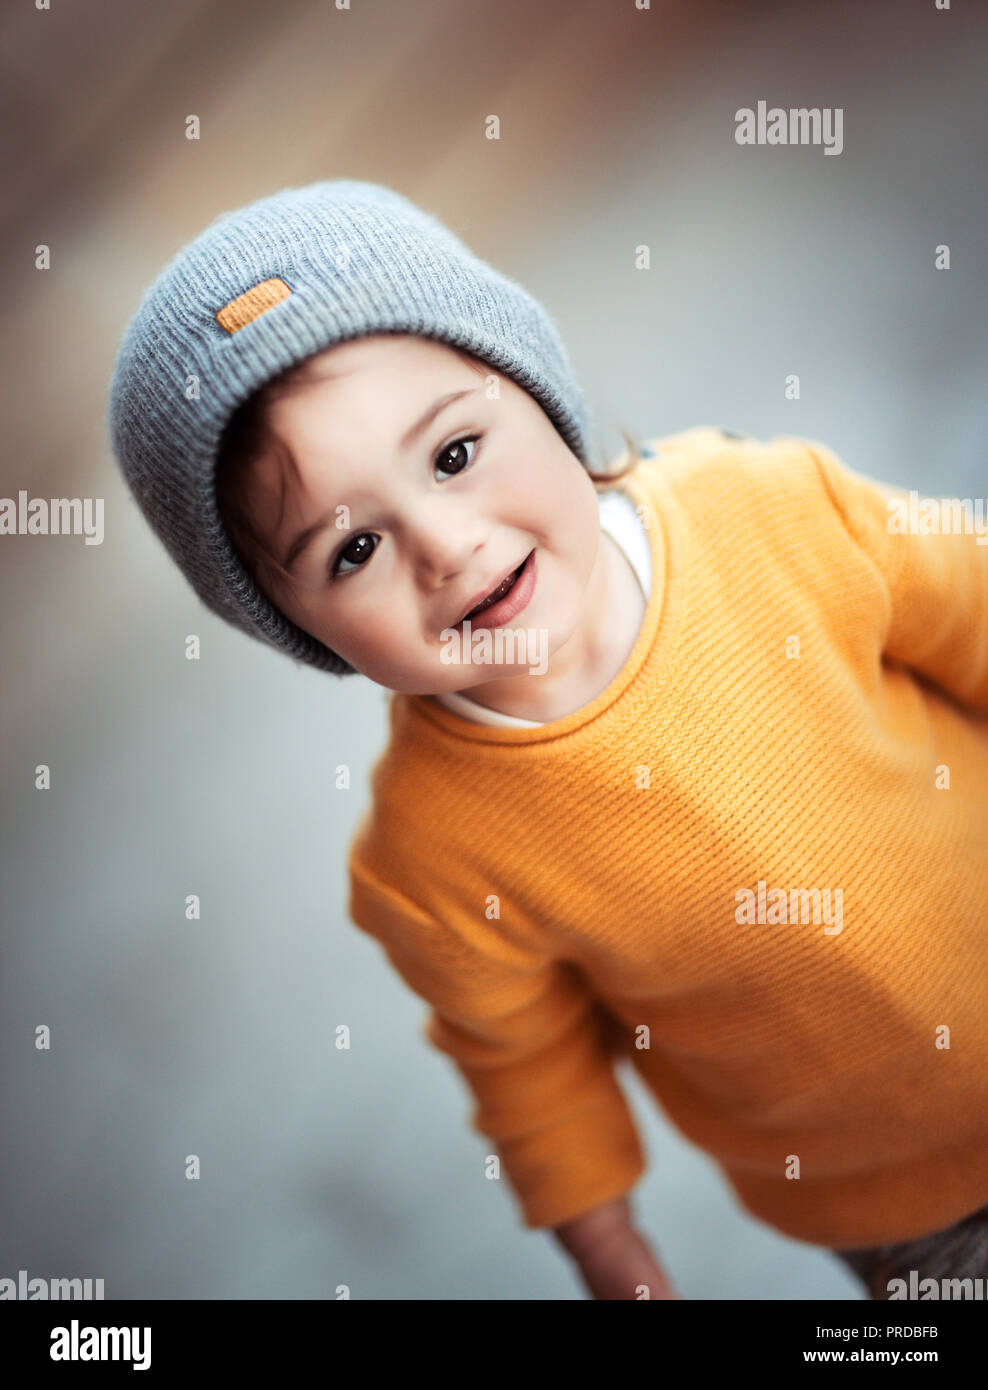 94ebbf979a8 Portrait of a cute happy smiling little baby wearing stylish warm clothes